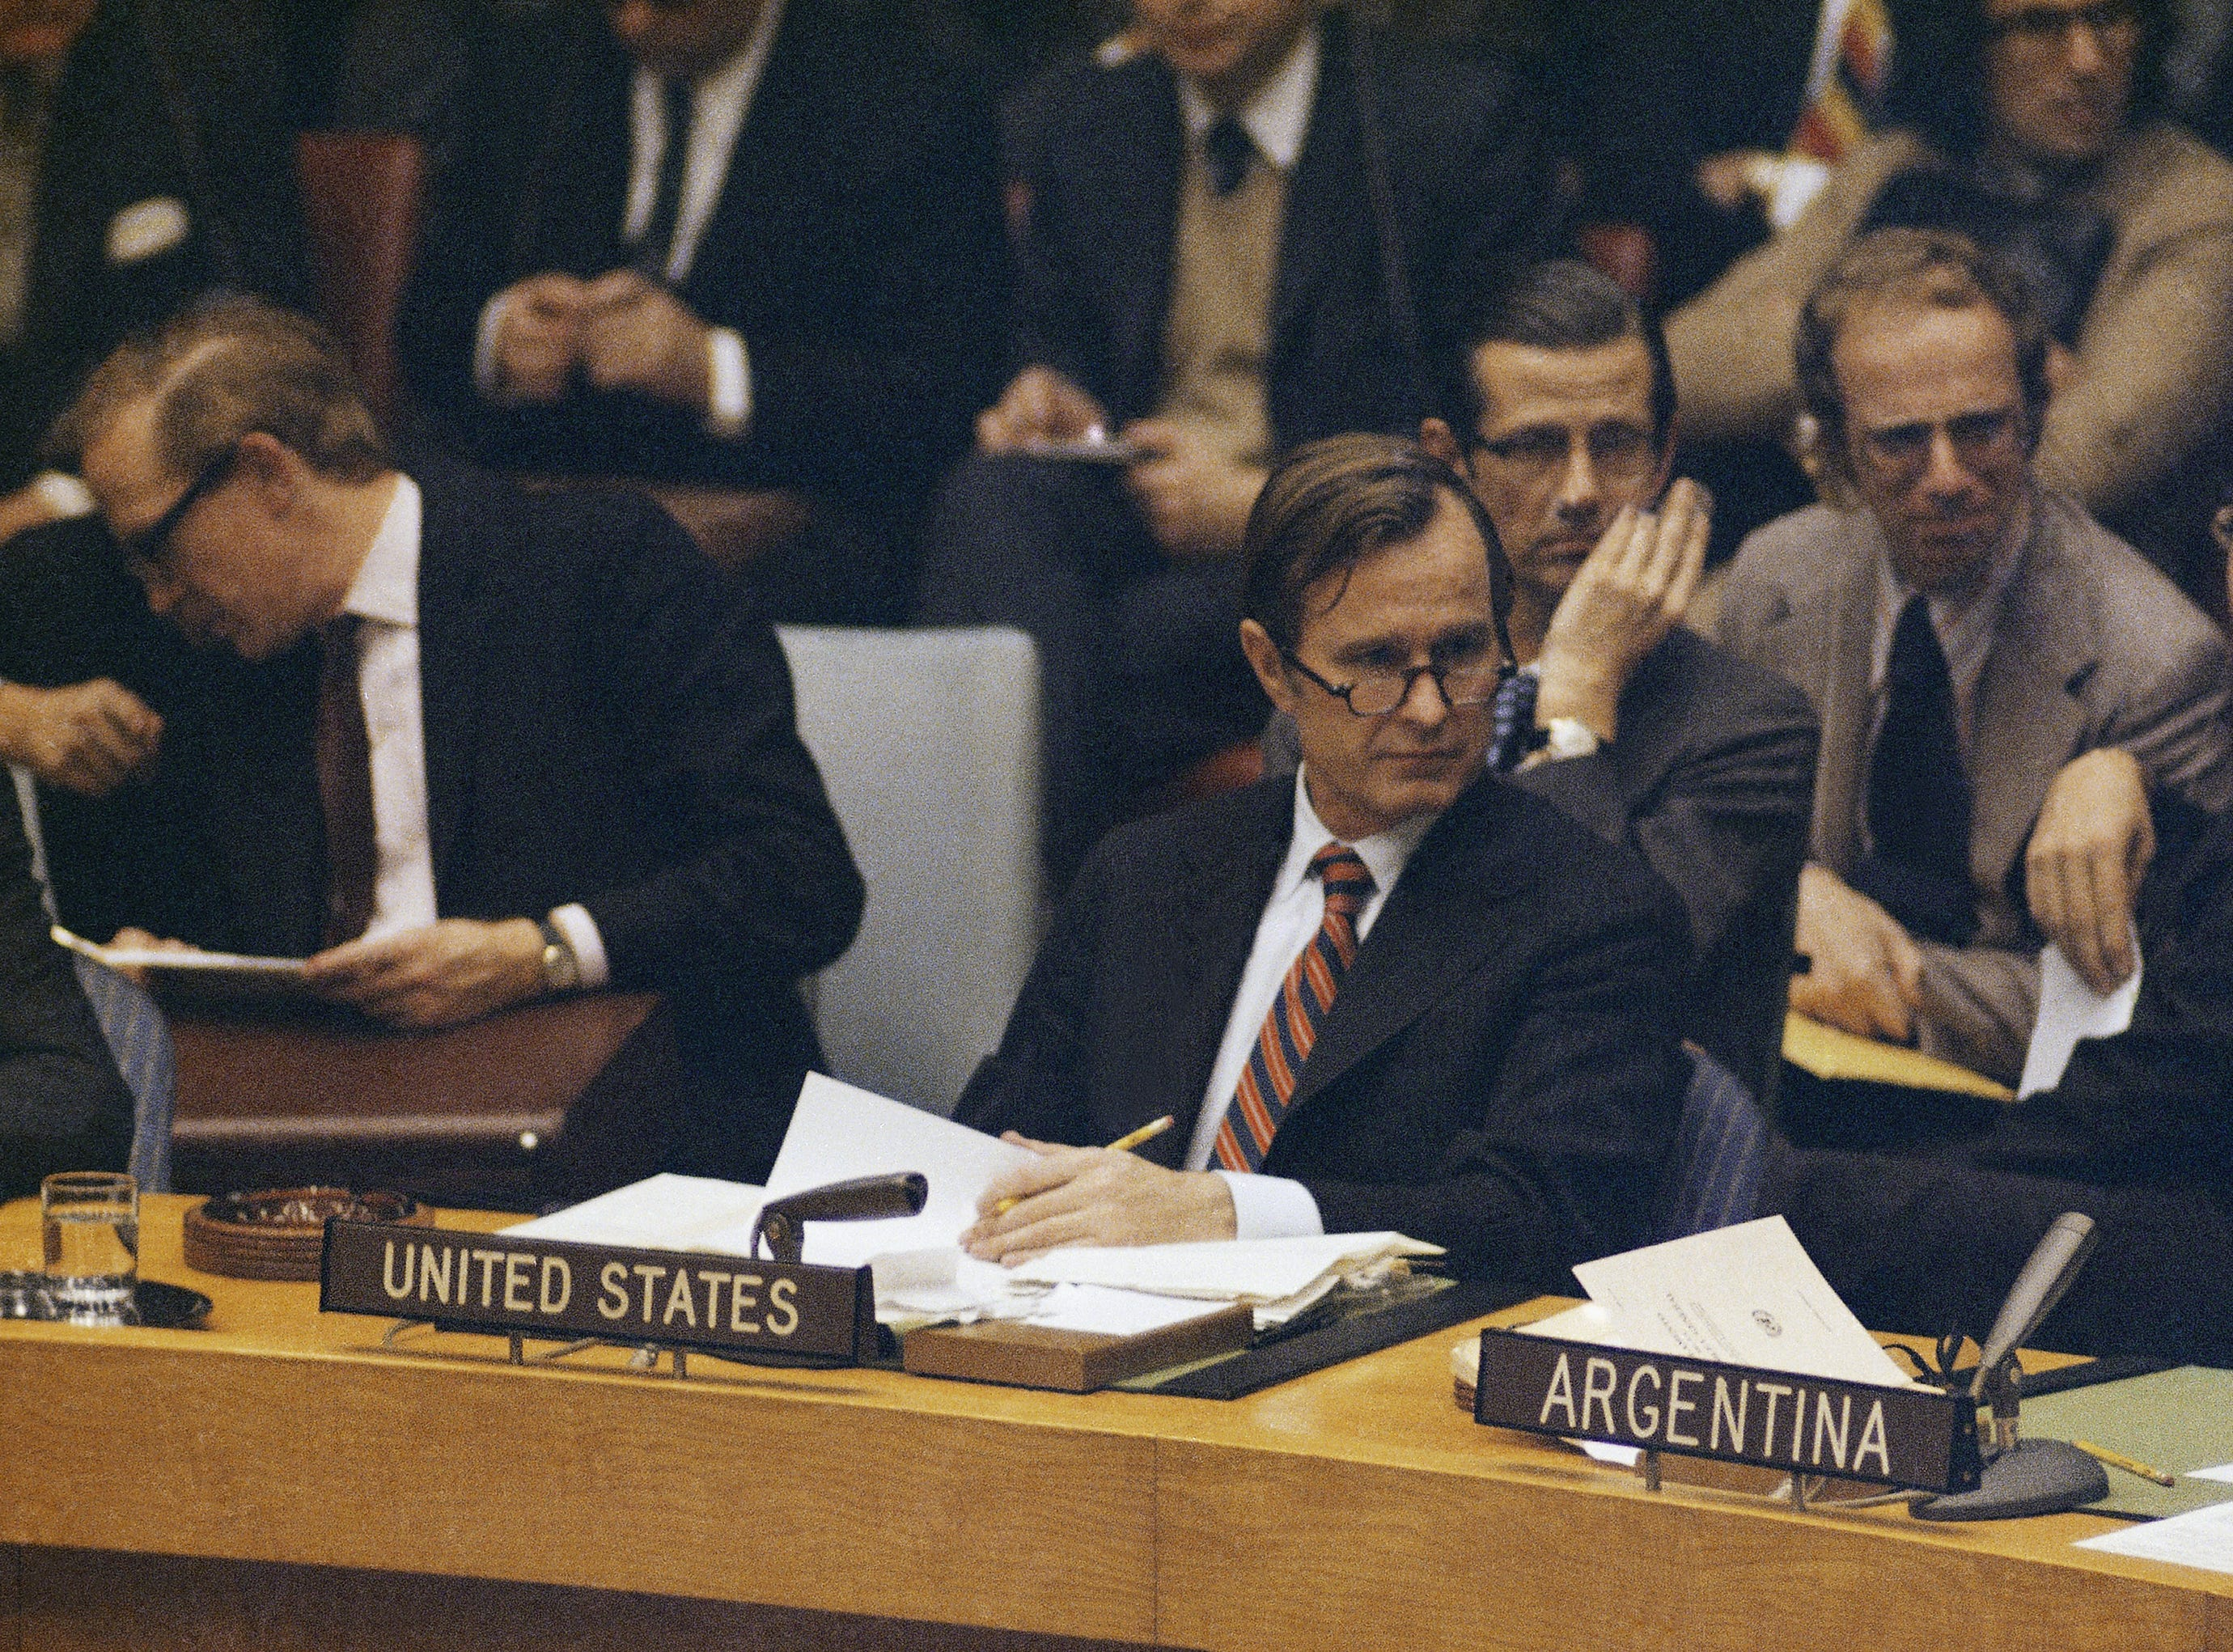 George Bush, U.S. Ambassador to the United Nations is shown at U.N. headquarters in New York in 1971. (AP Photo)